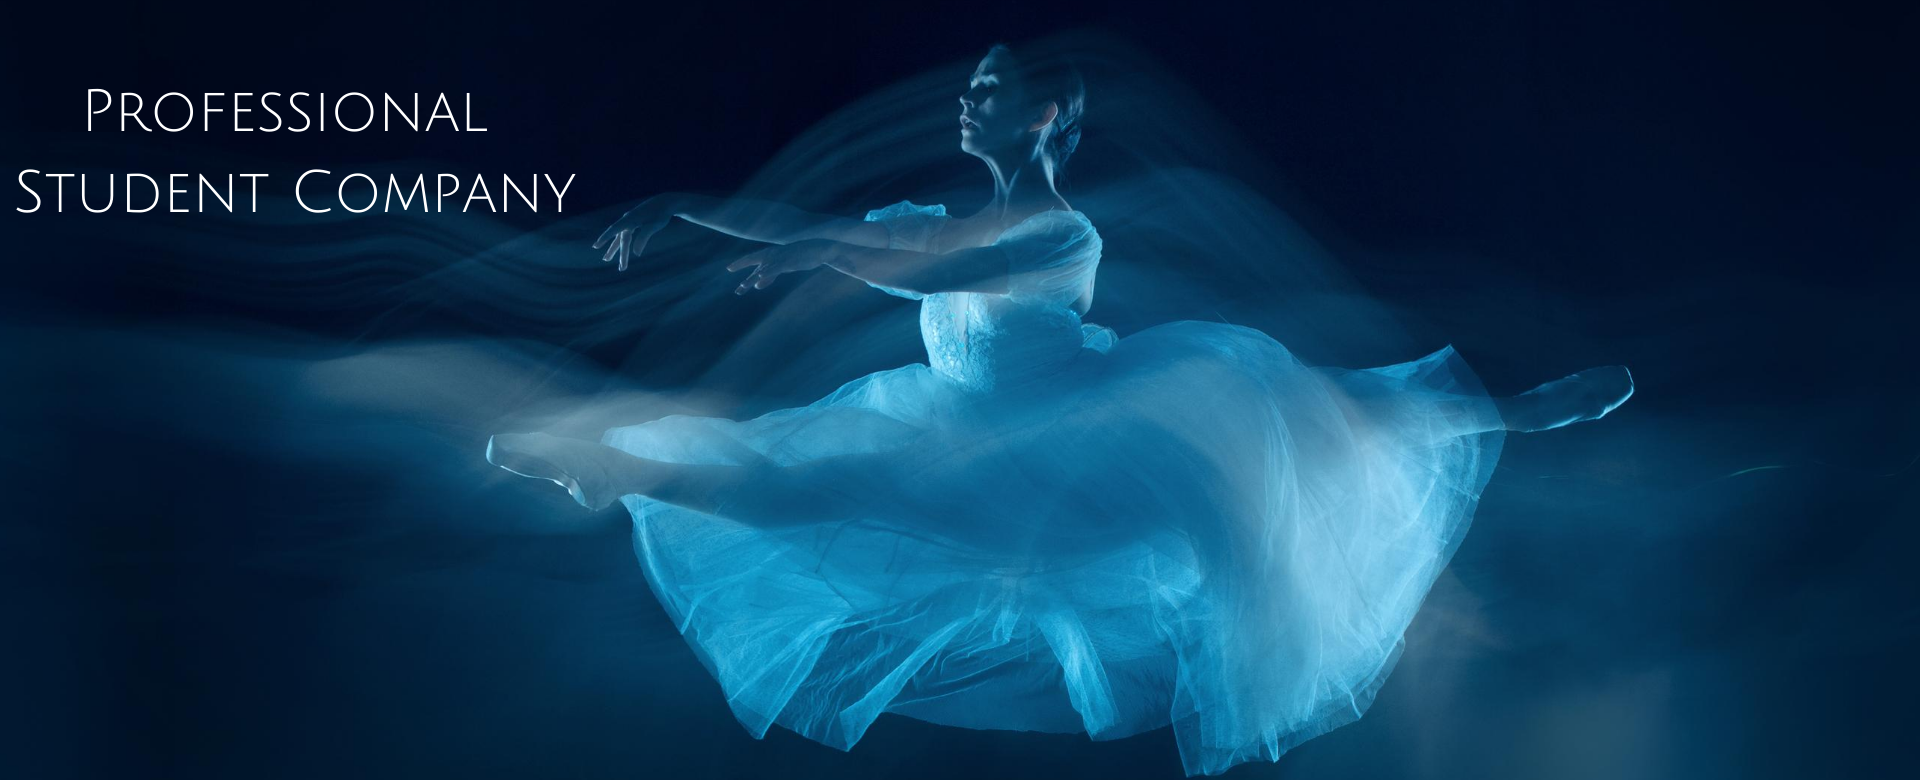 Professional Student Company for dedicagted youth ballet dacners.